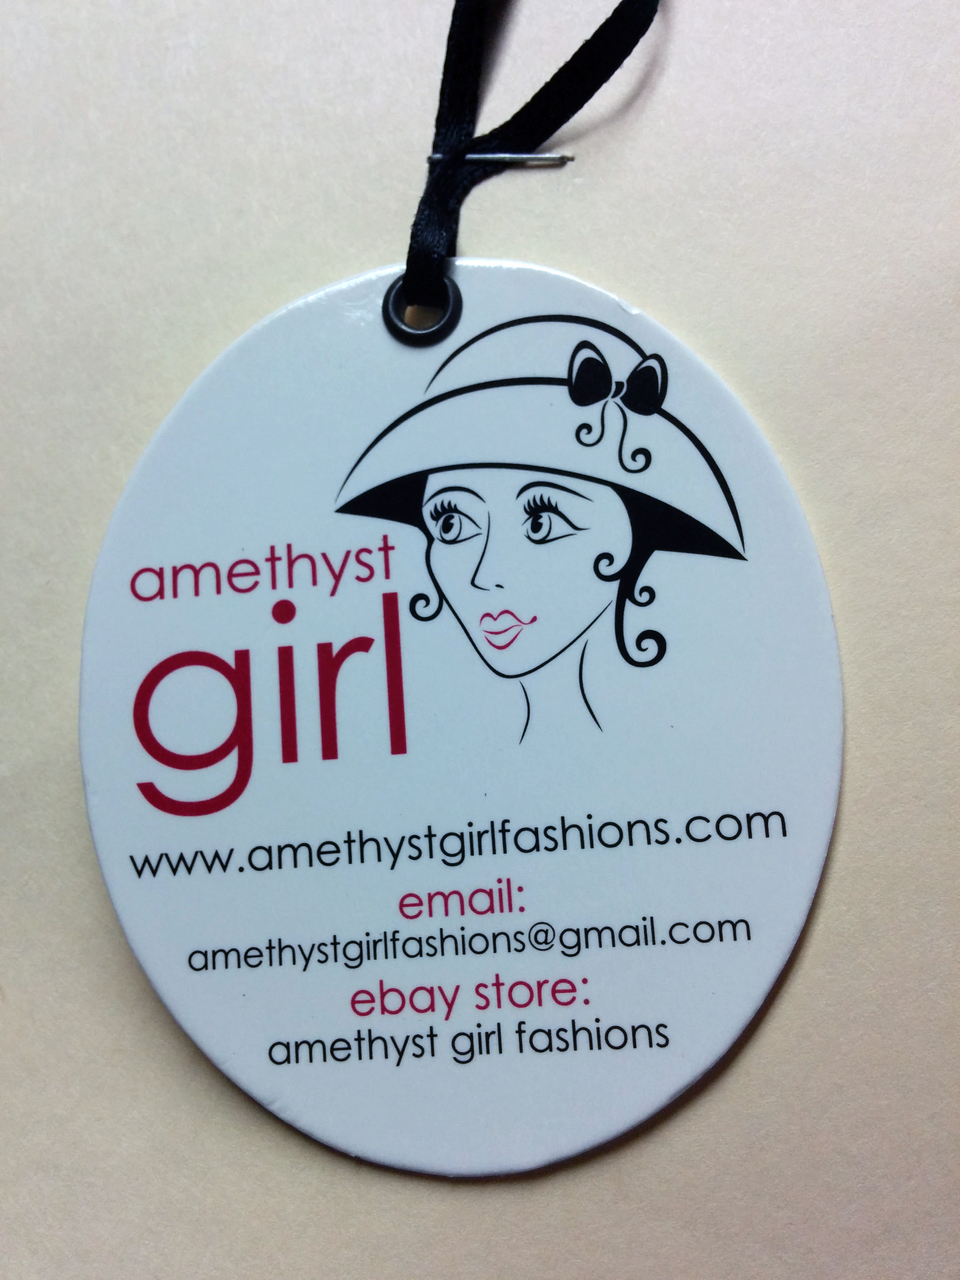 Custom Printed Hangtag with Gloss Coating Finsih